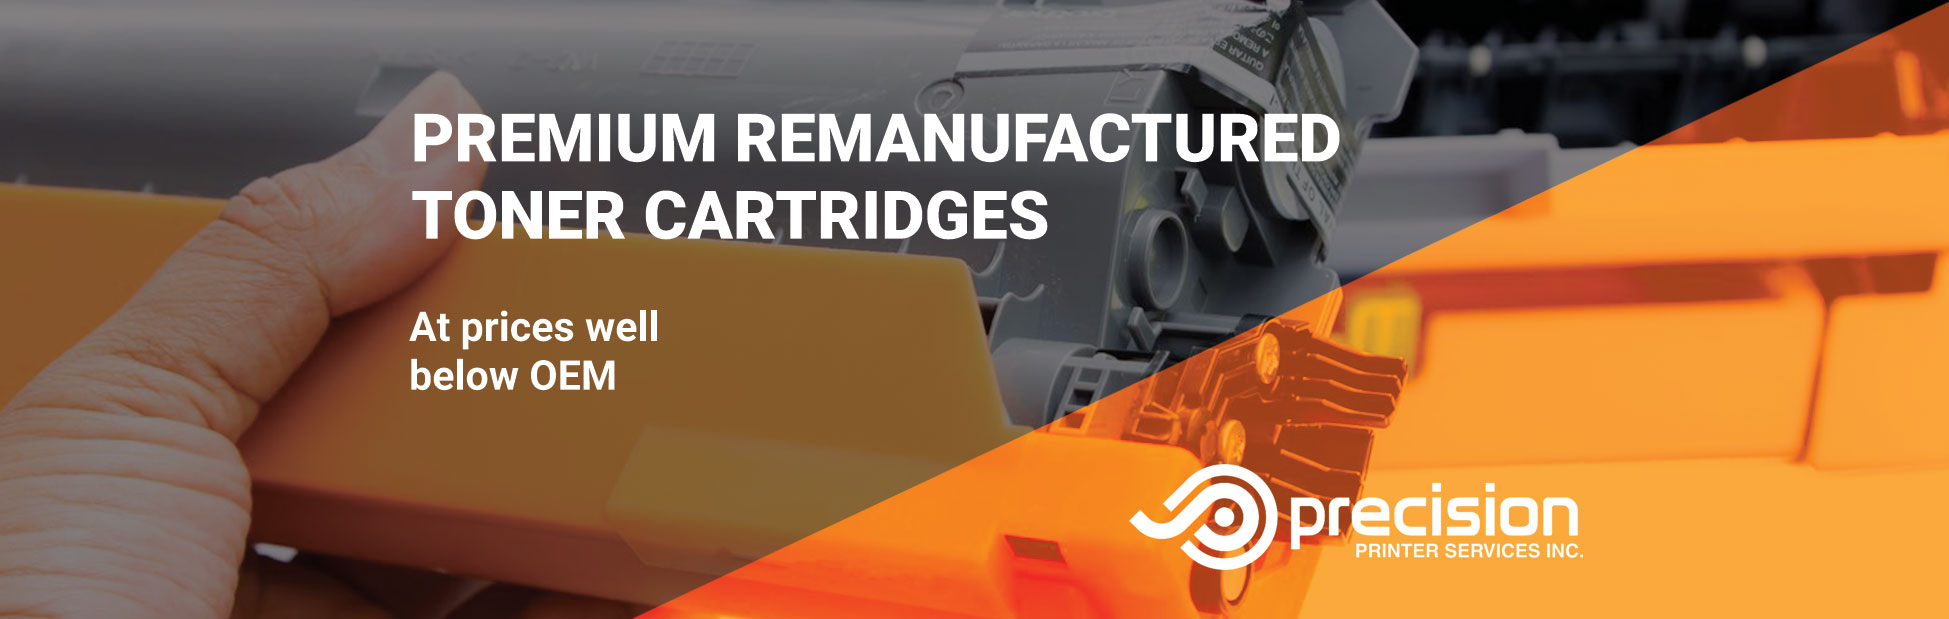 Premium Remanufactured Toner Cartridges